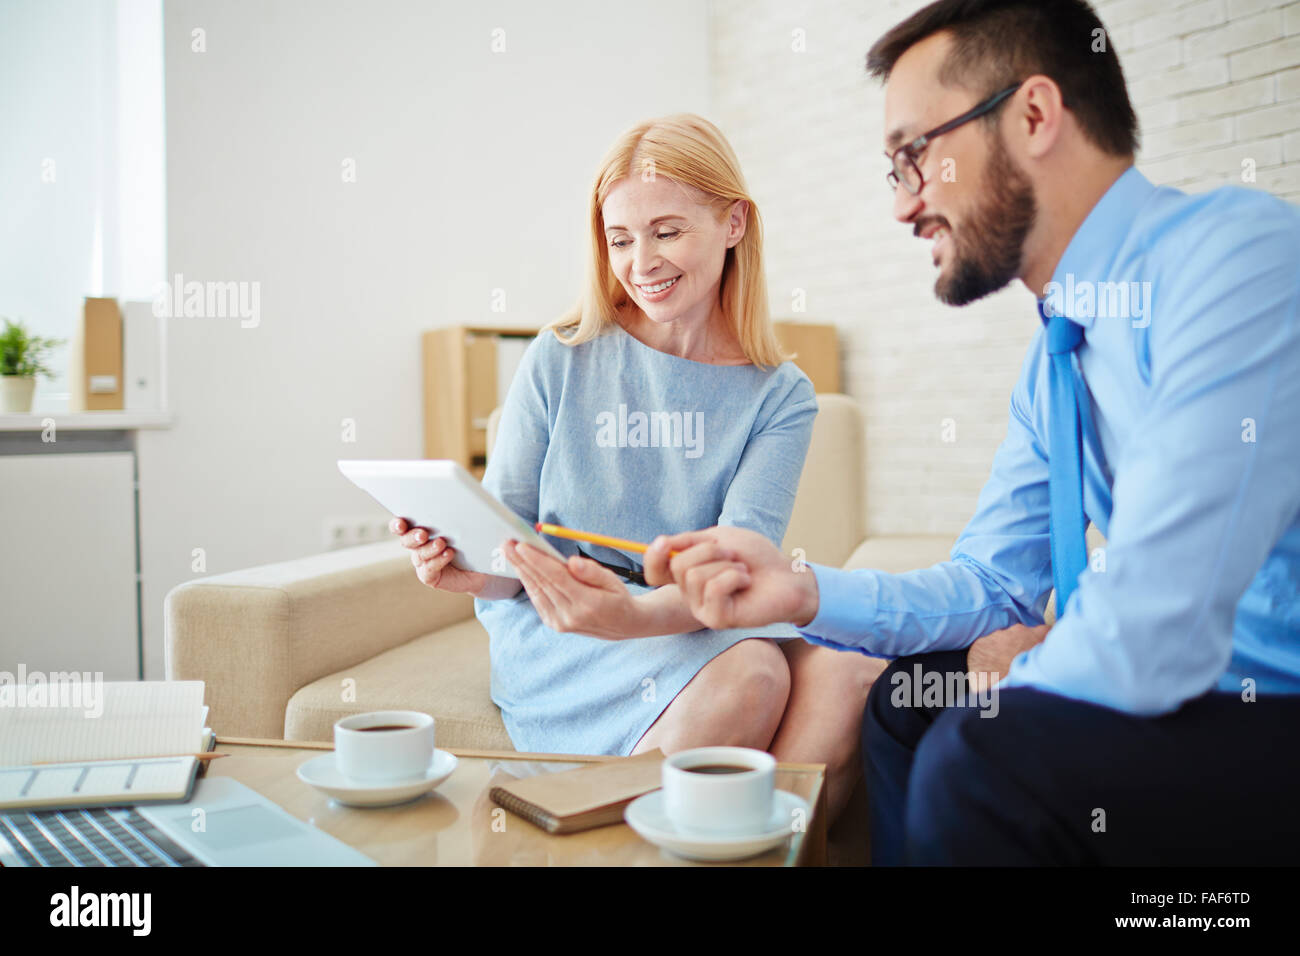 Business people working together and using touchpad at office - Stock Image